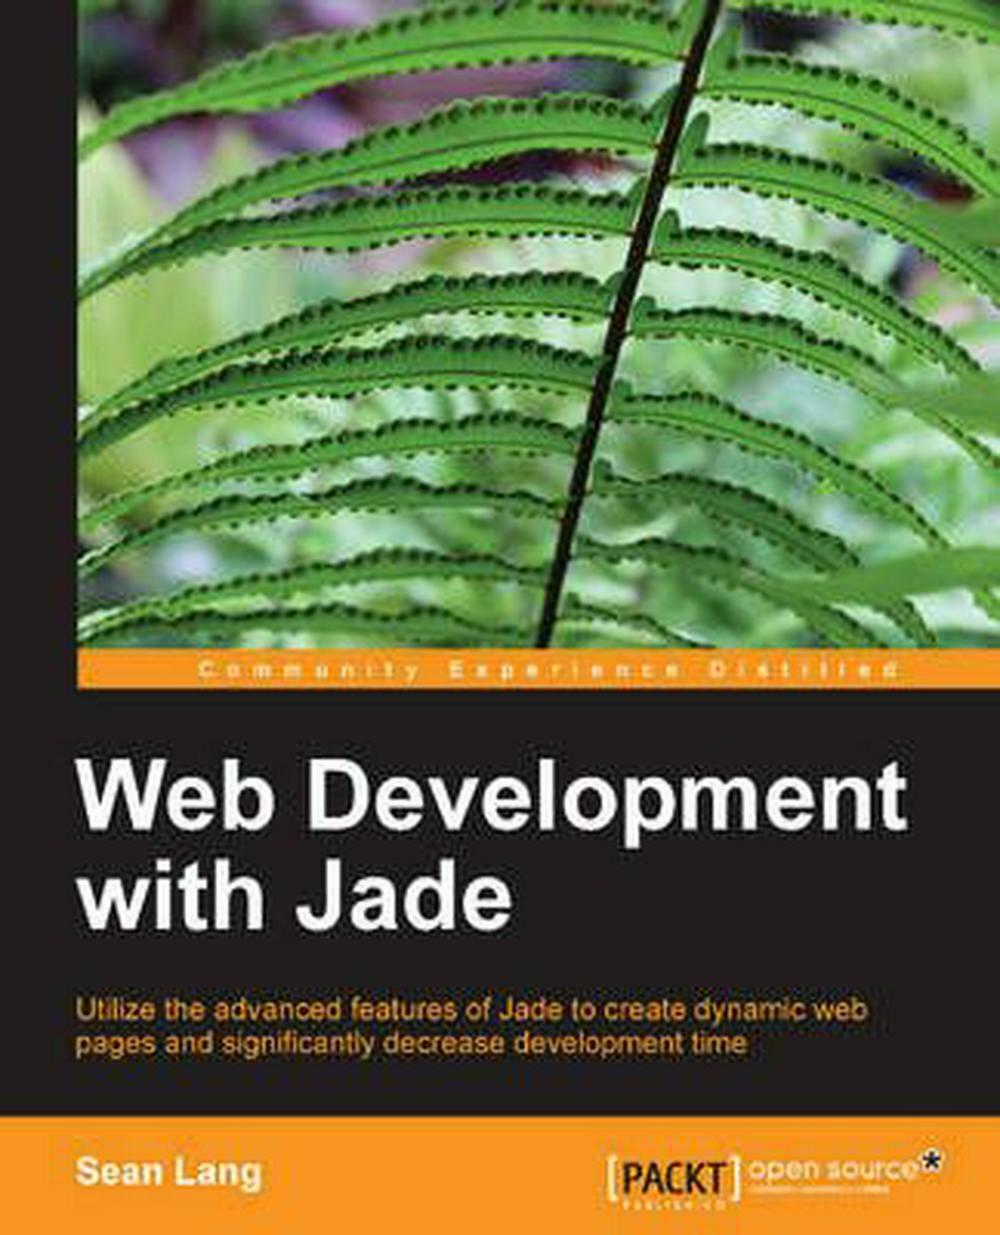 Web Development with Jade by Sean Lang (English) Paperback Book Free Shipping! |